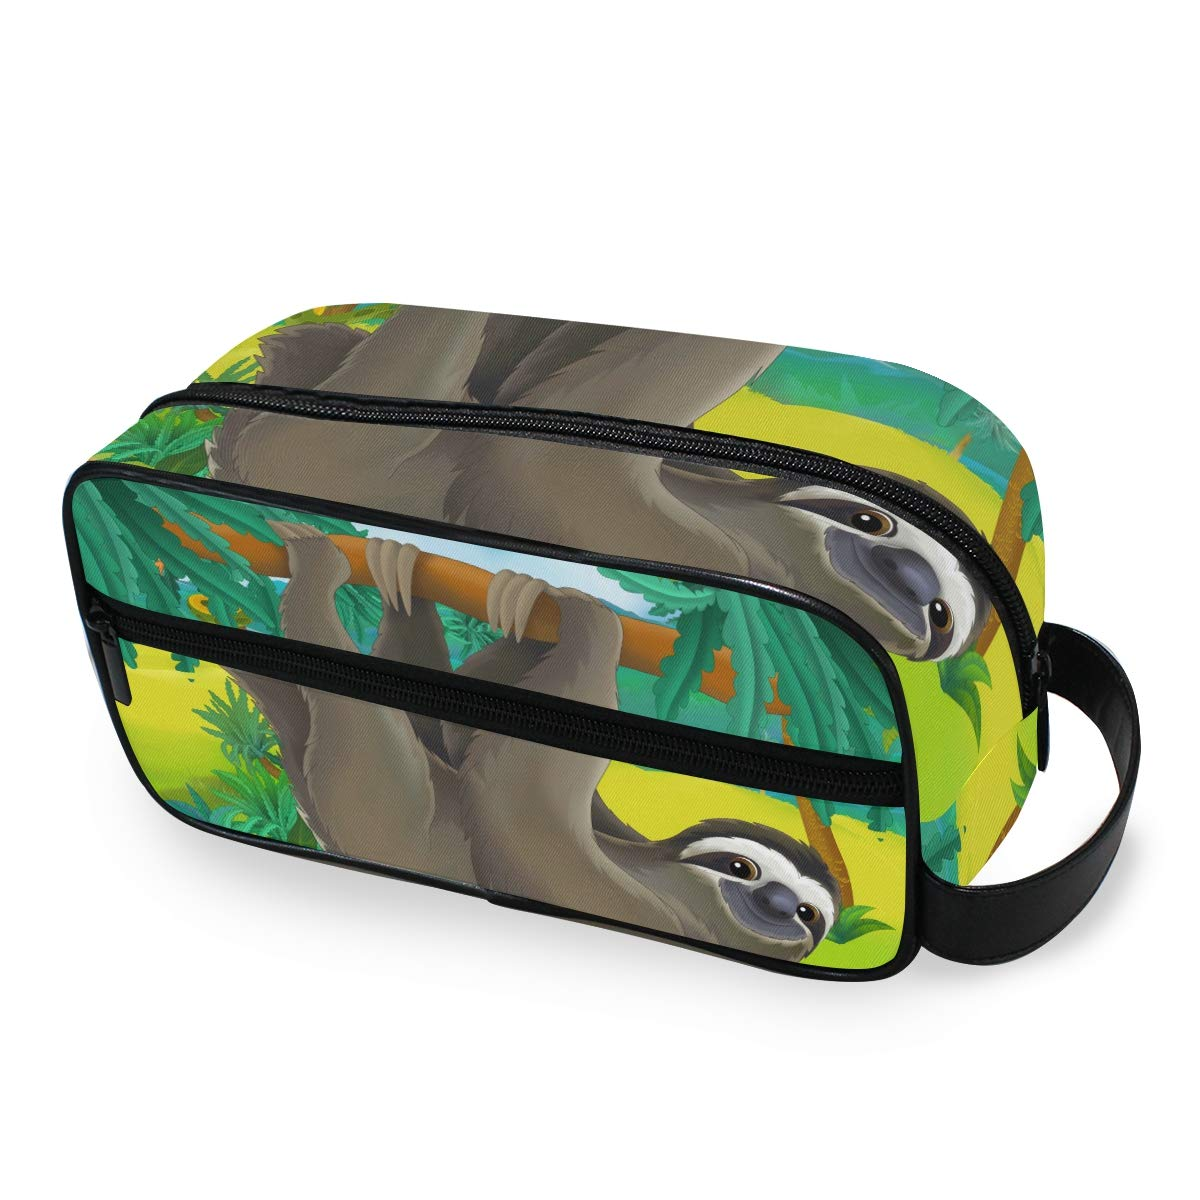 JOYPRINT Portable Travel Makeup Bag, Animal Sloth Tree Art Cosmetic Bag Toiletry Bag Pouch with Zipper Multifunction Cosmetic Case for Women Girls